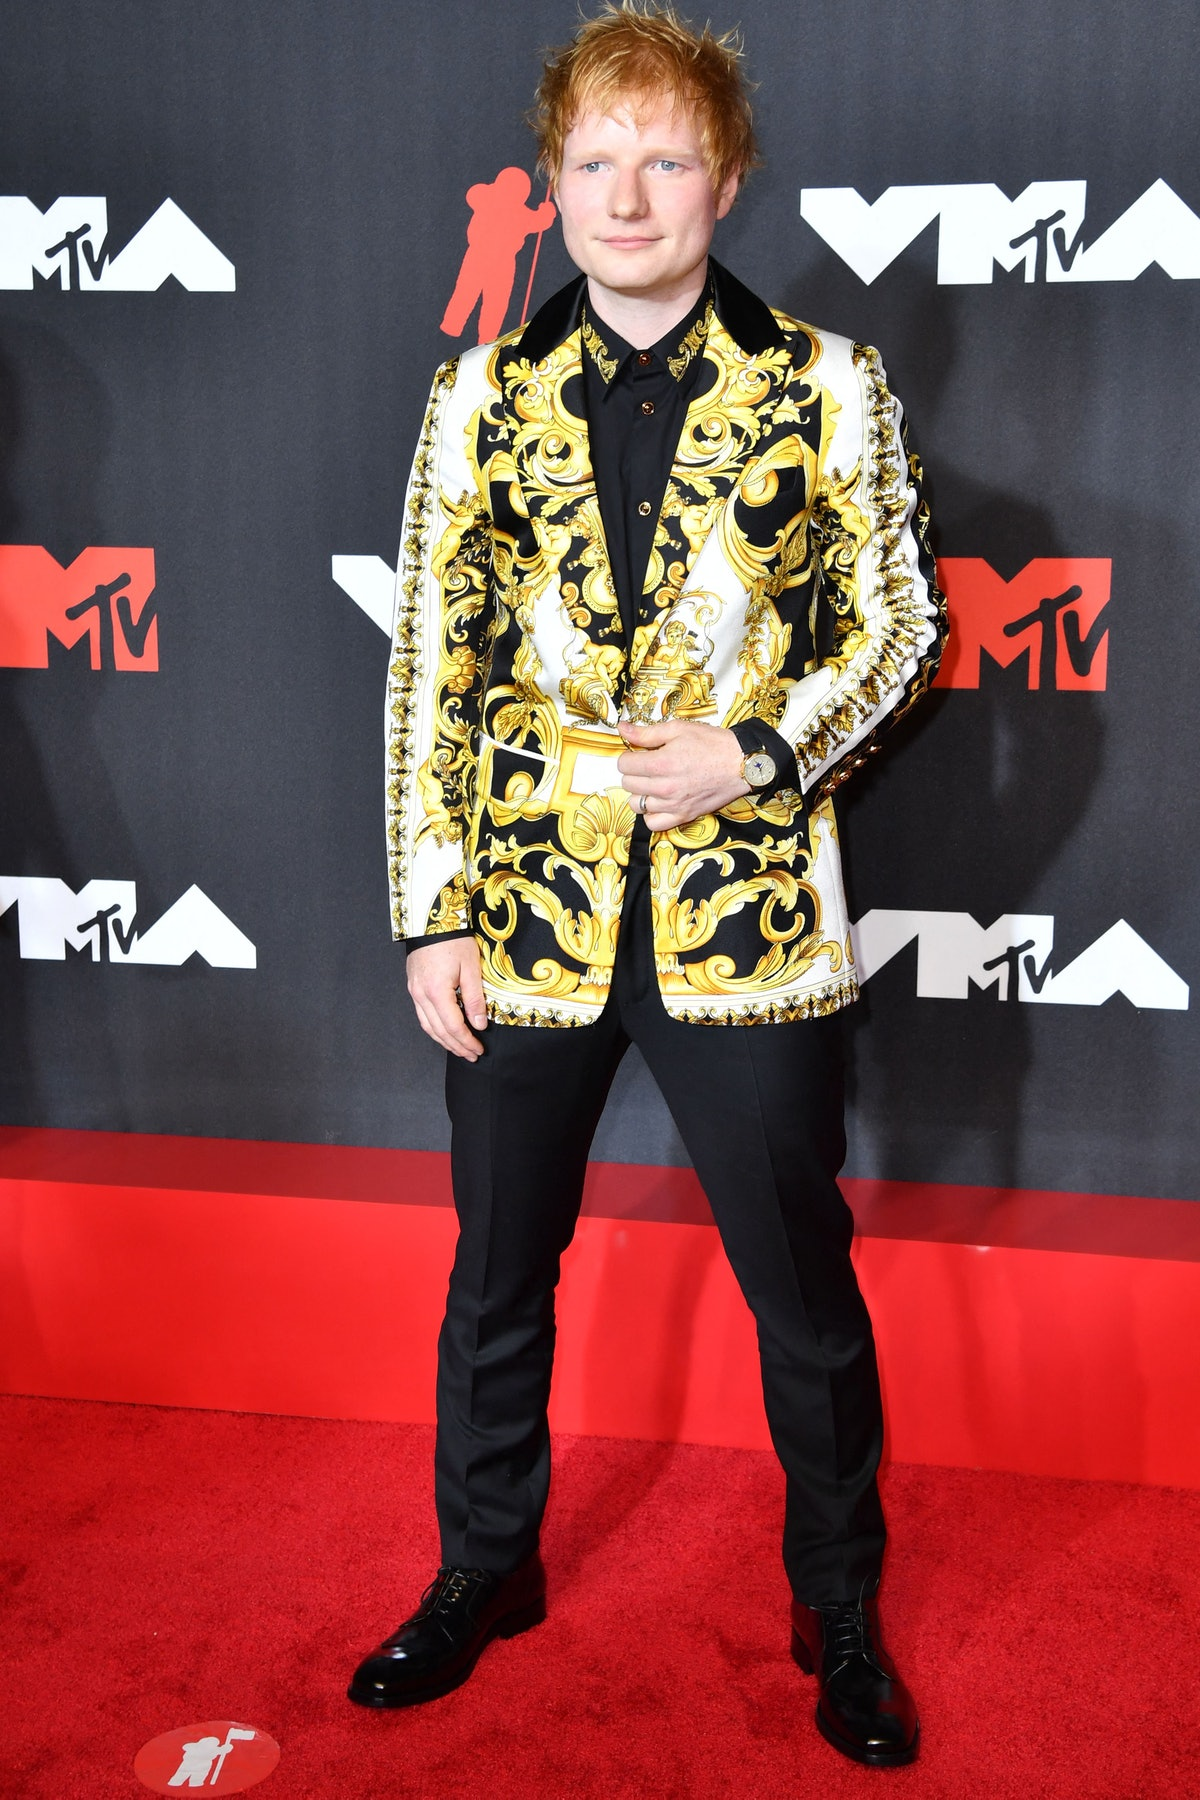 Ed Sheeran arrives for the 2021 MTV Video Music Awards at Barclays Center in Brooklyn, New York, Sep...